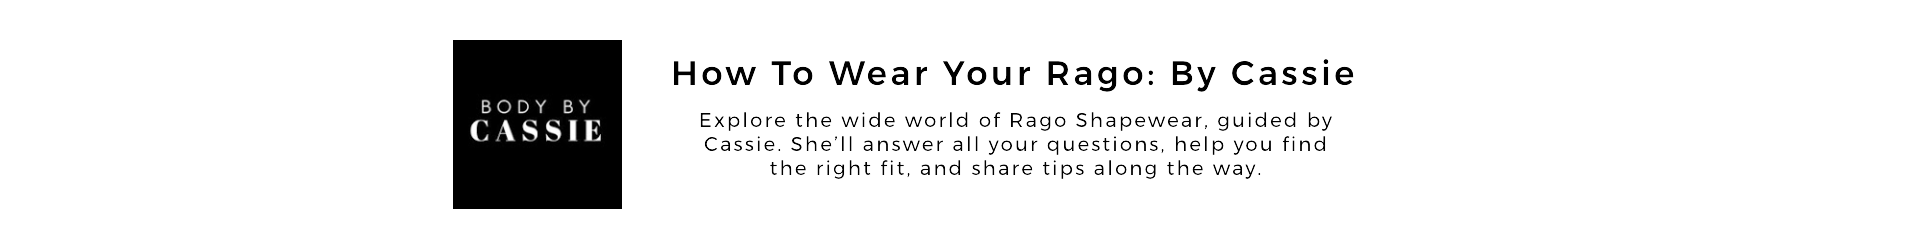 How to wear your Rago by Cassie